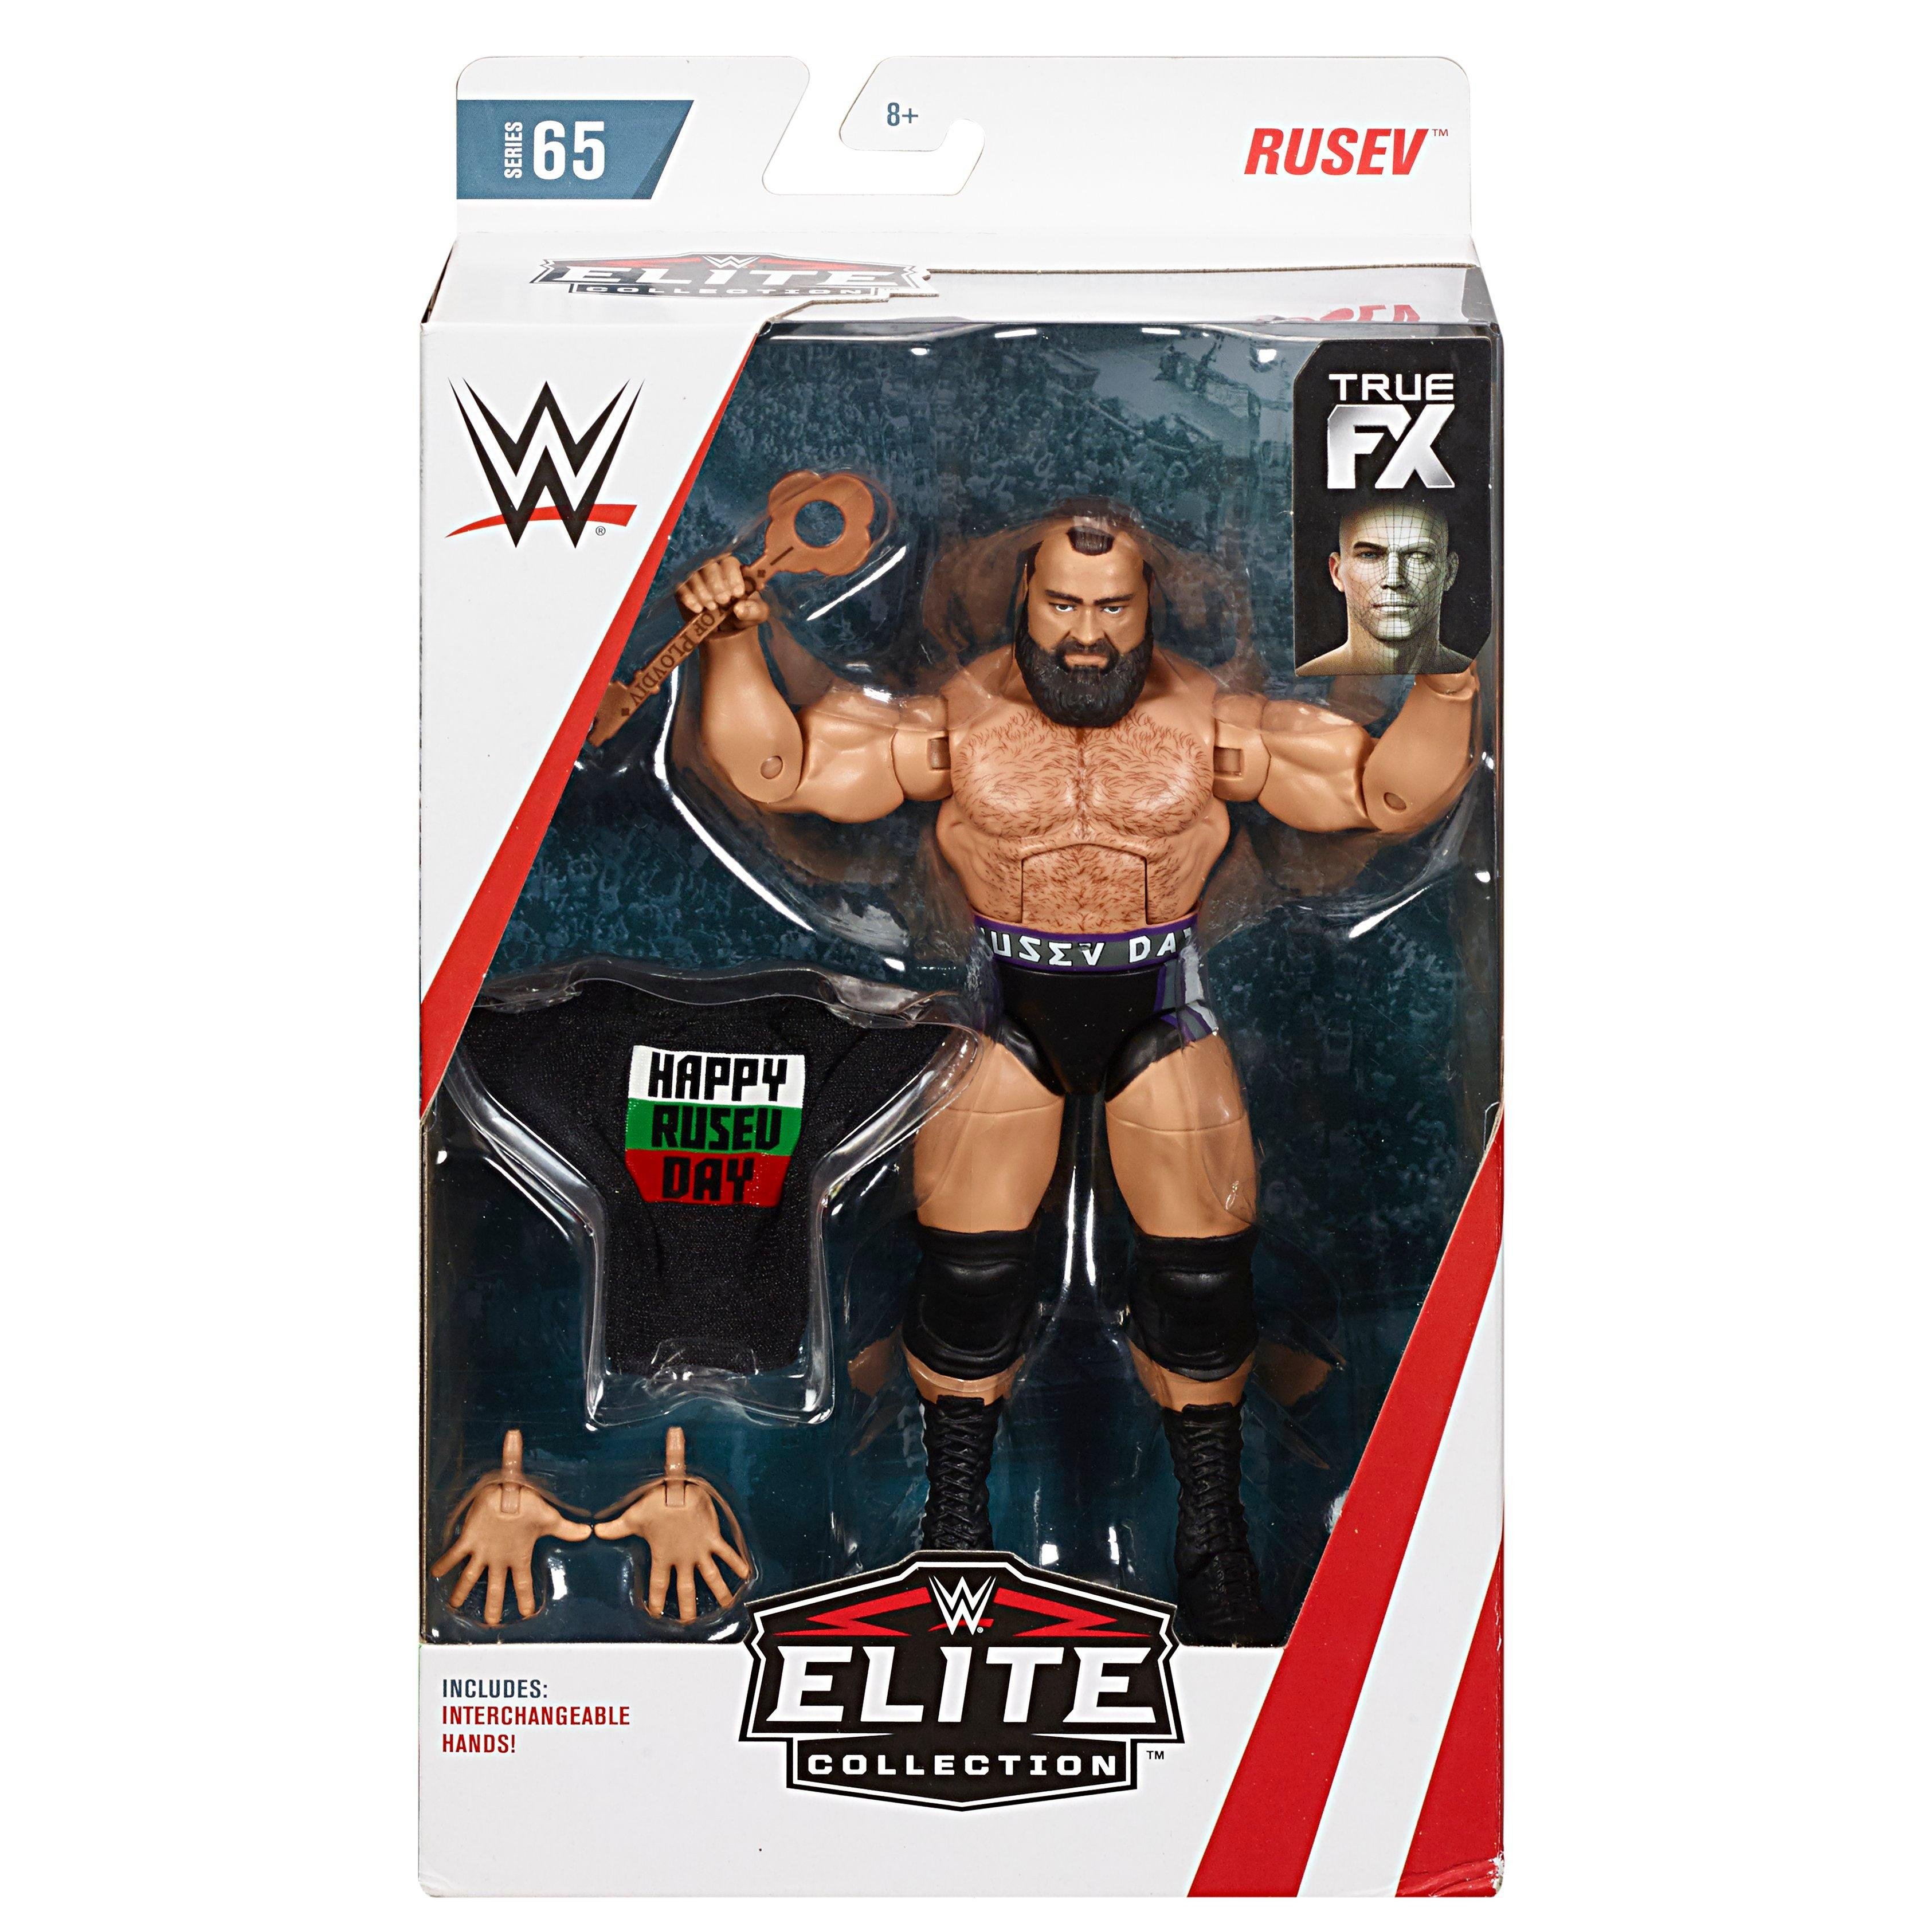 Wwe Elite Action Figures Gamestop Exclusive Highly Detailed *SAME DAY SHIPPING*